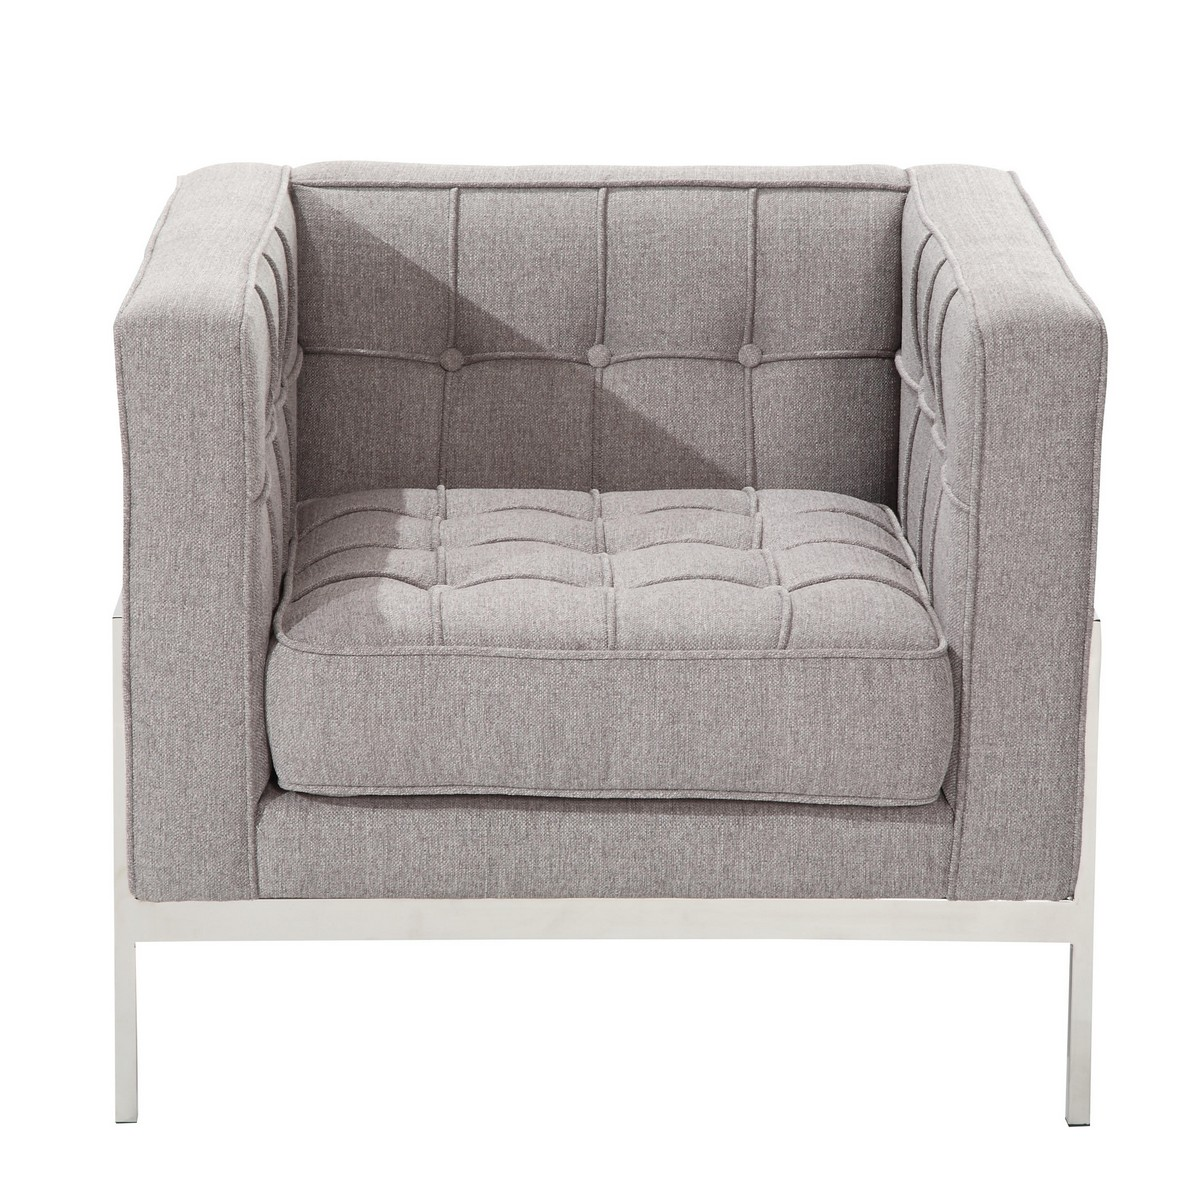 Armen Living Andre Contemporary Chair In Gray Tweed and Stainless Steel